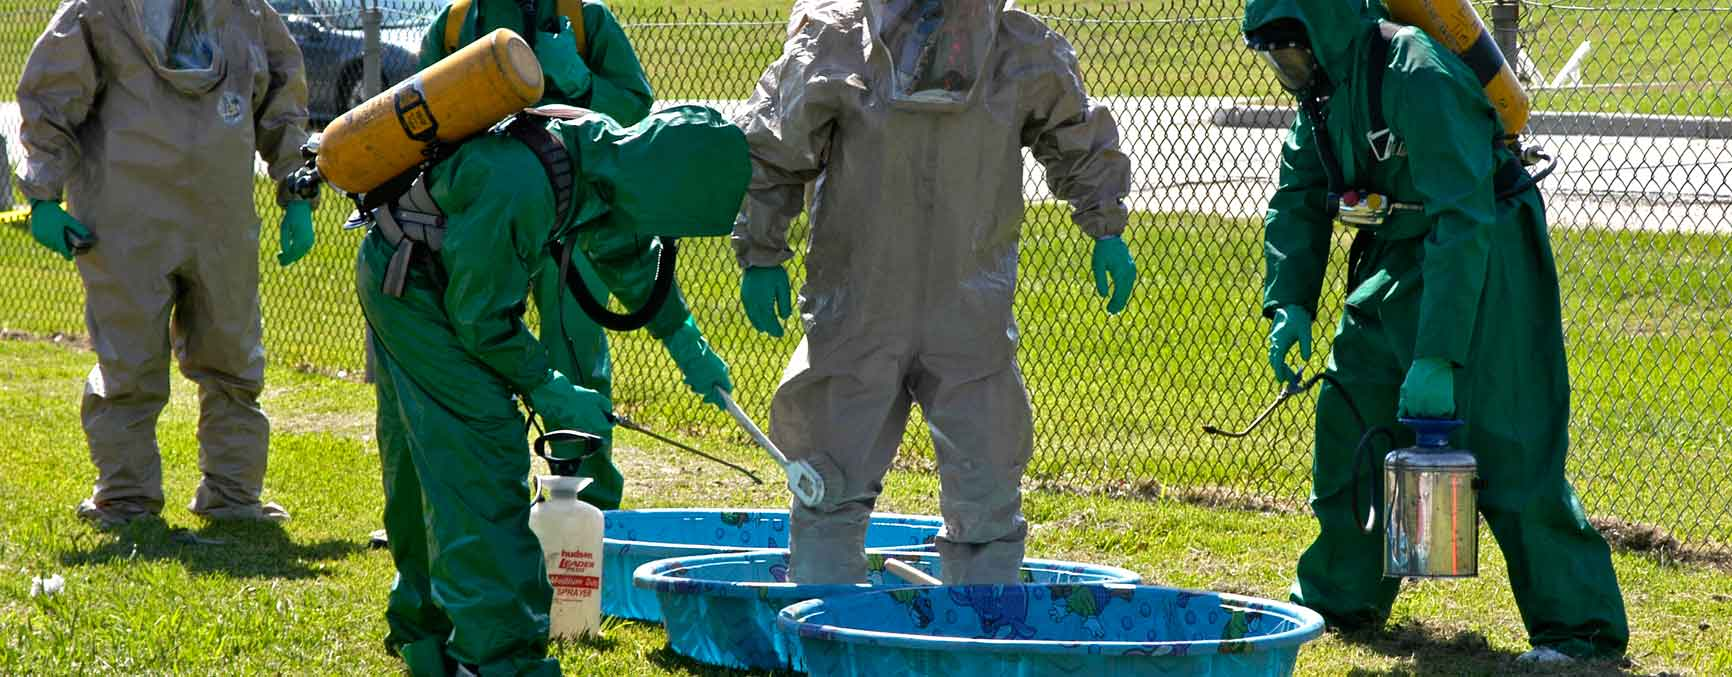 Hazardous Materials Spill Response Course